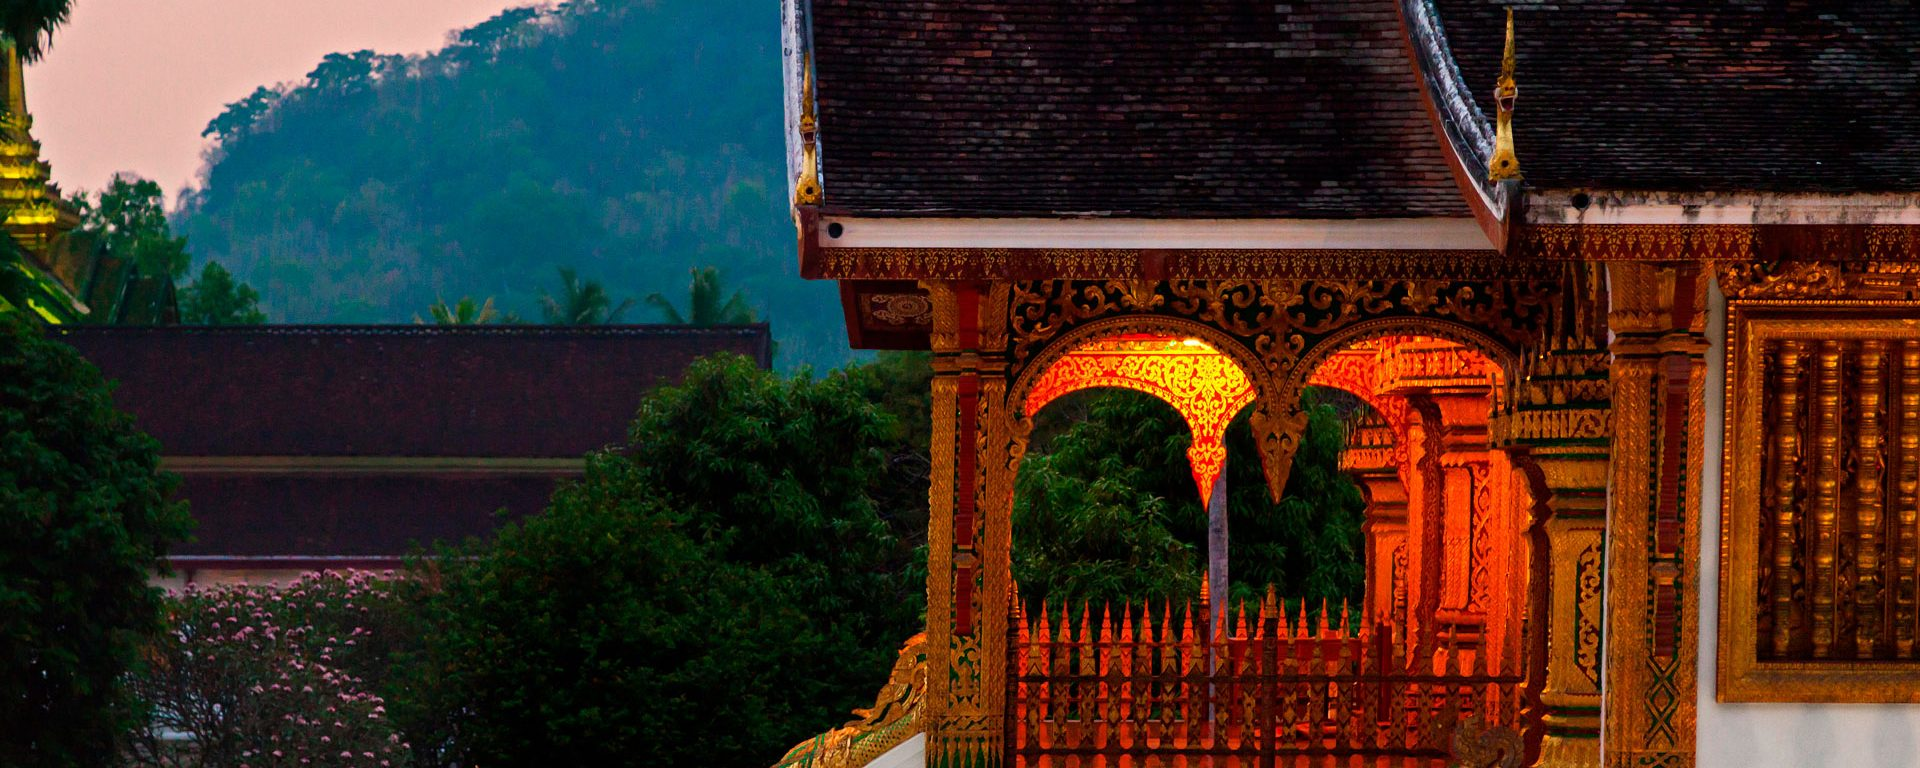 Entrance to Royal Temple in the Royal Palace complex, Luang Prabang, Laos